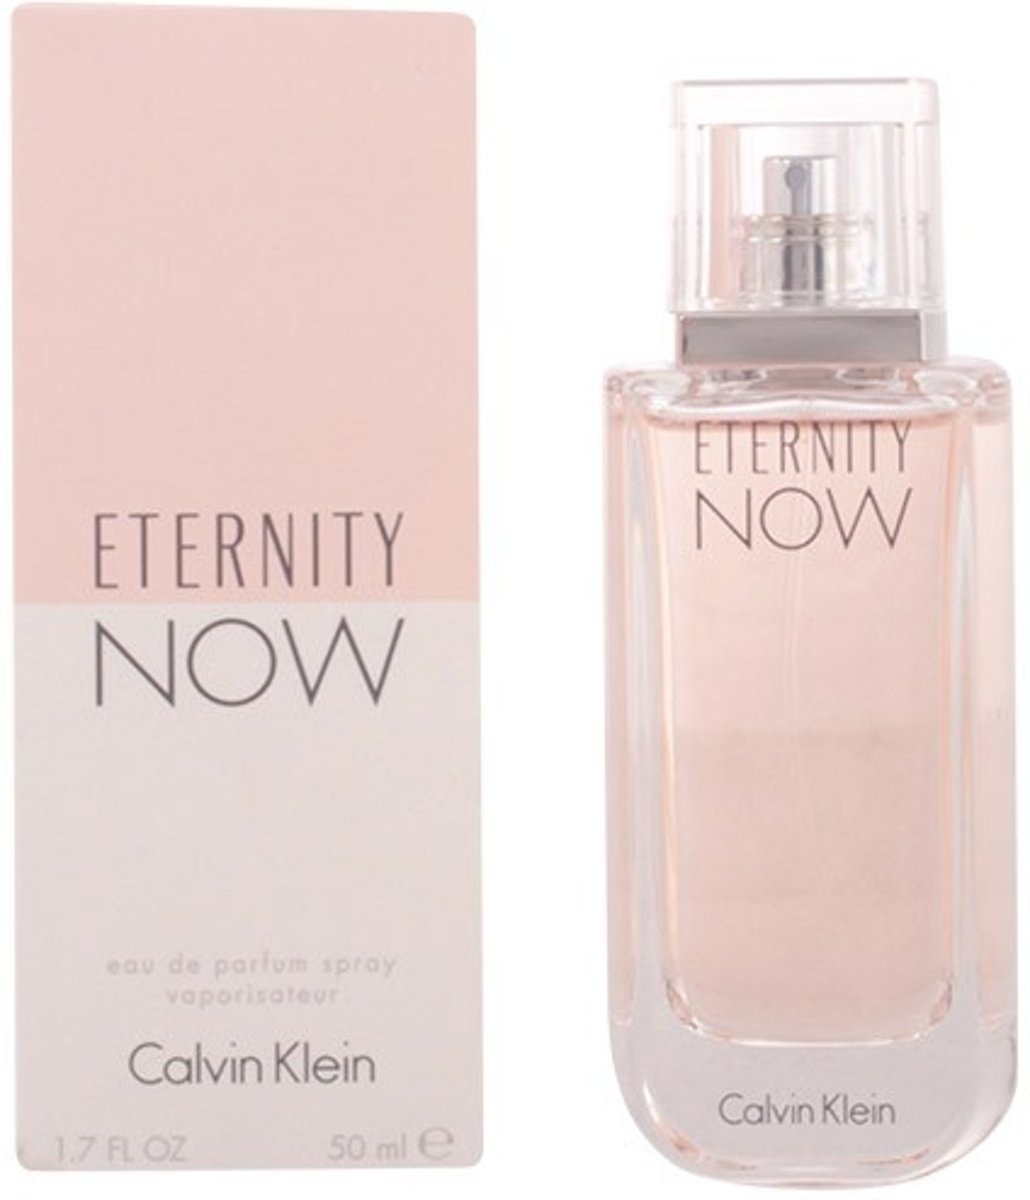 MULTI BUNDEL 2 stuks ETERNITY NOW Eau de Perfume Spray 50 ml